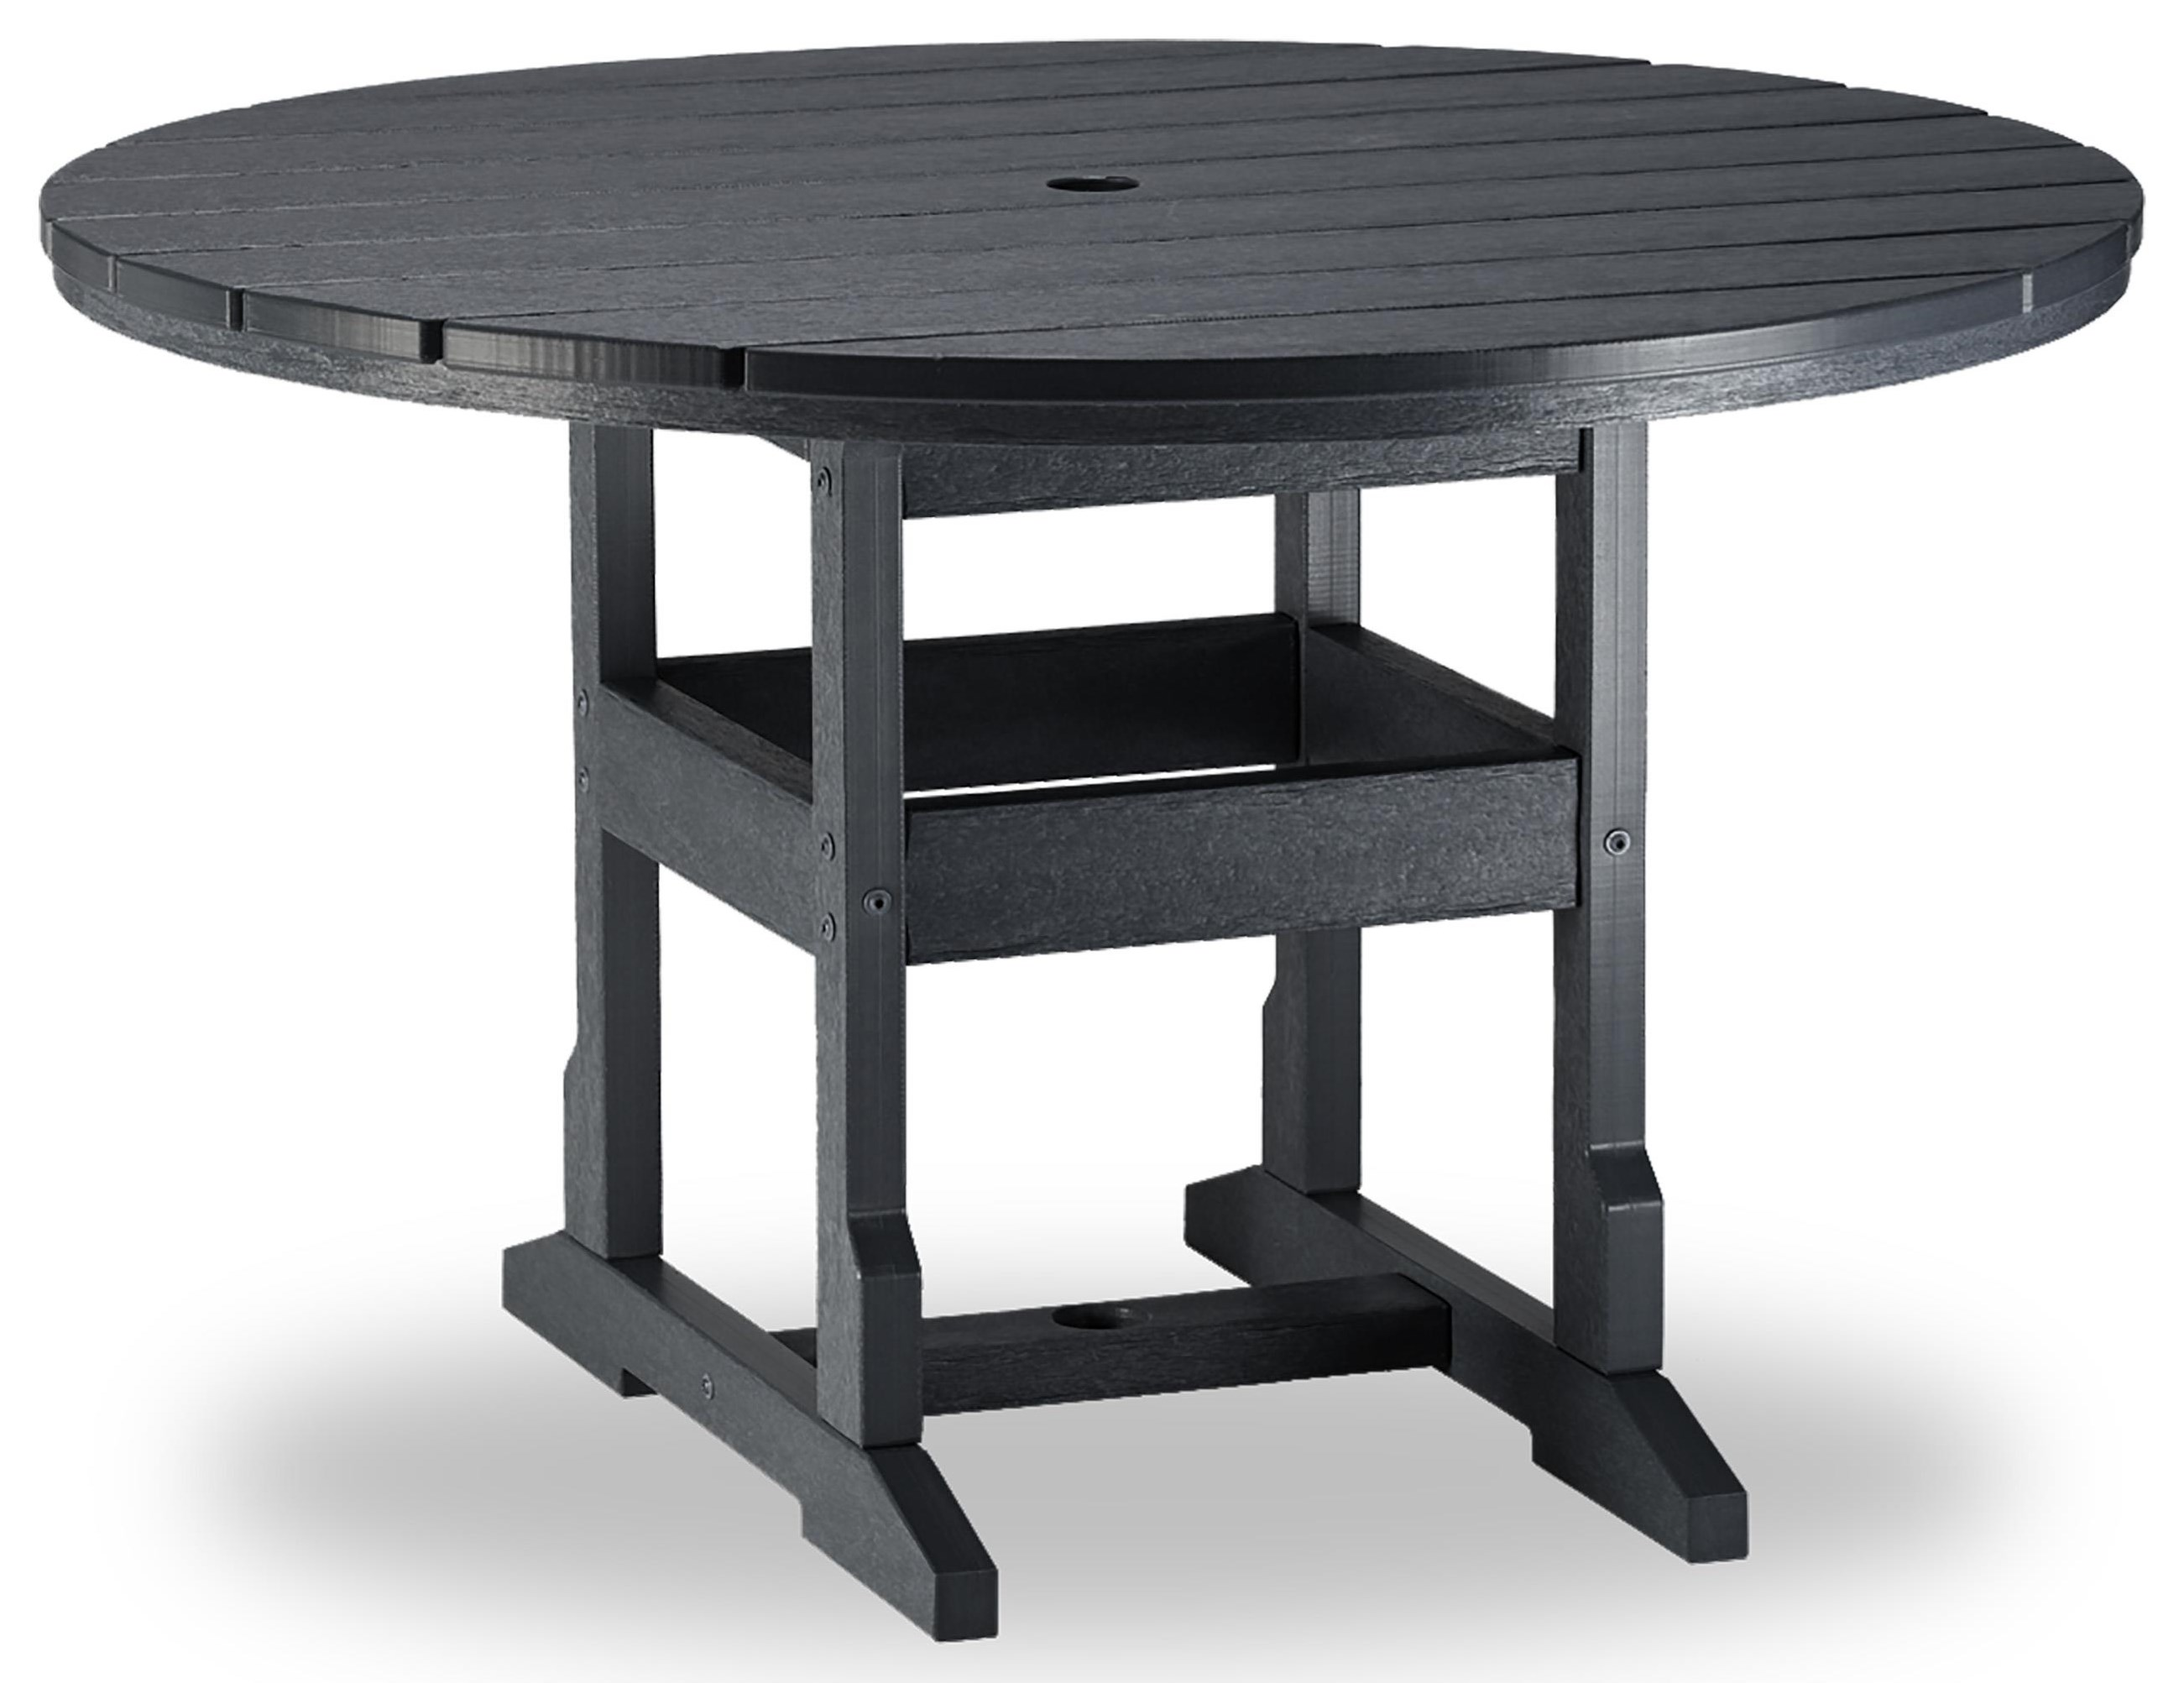 48 inch Round Table with Umbrella Hole